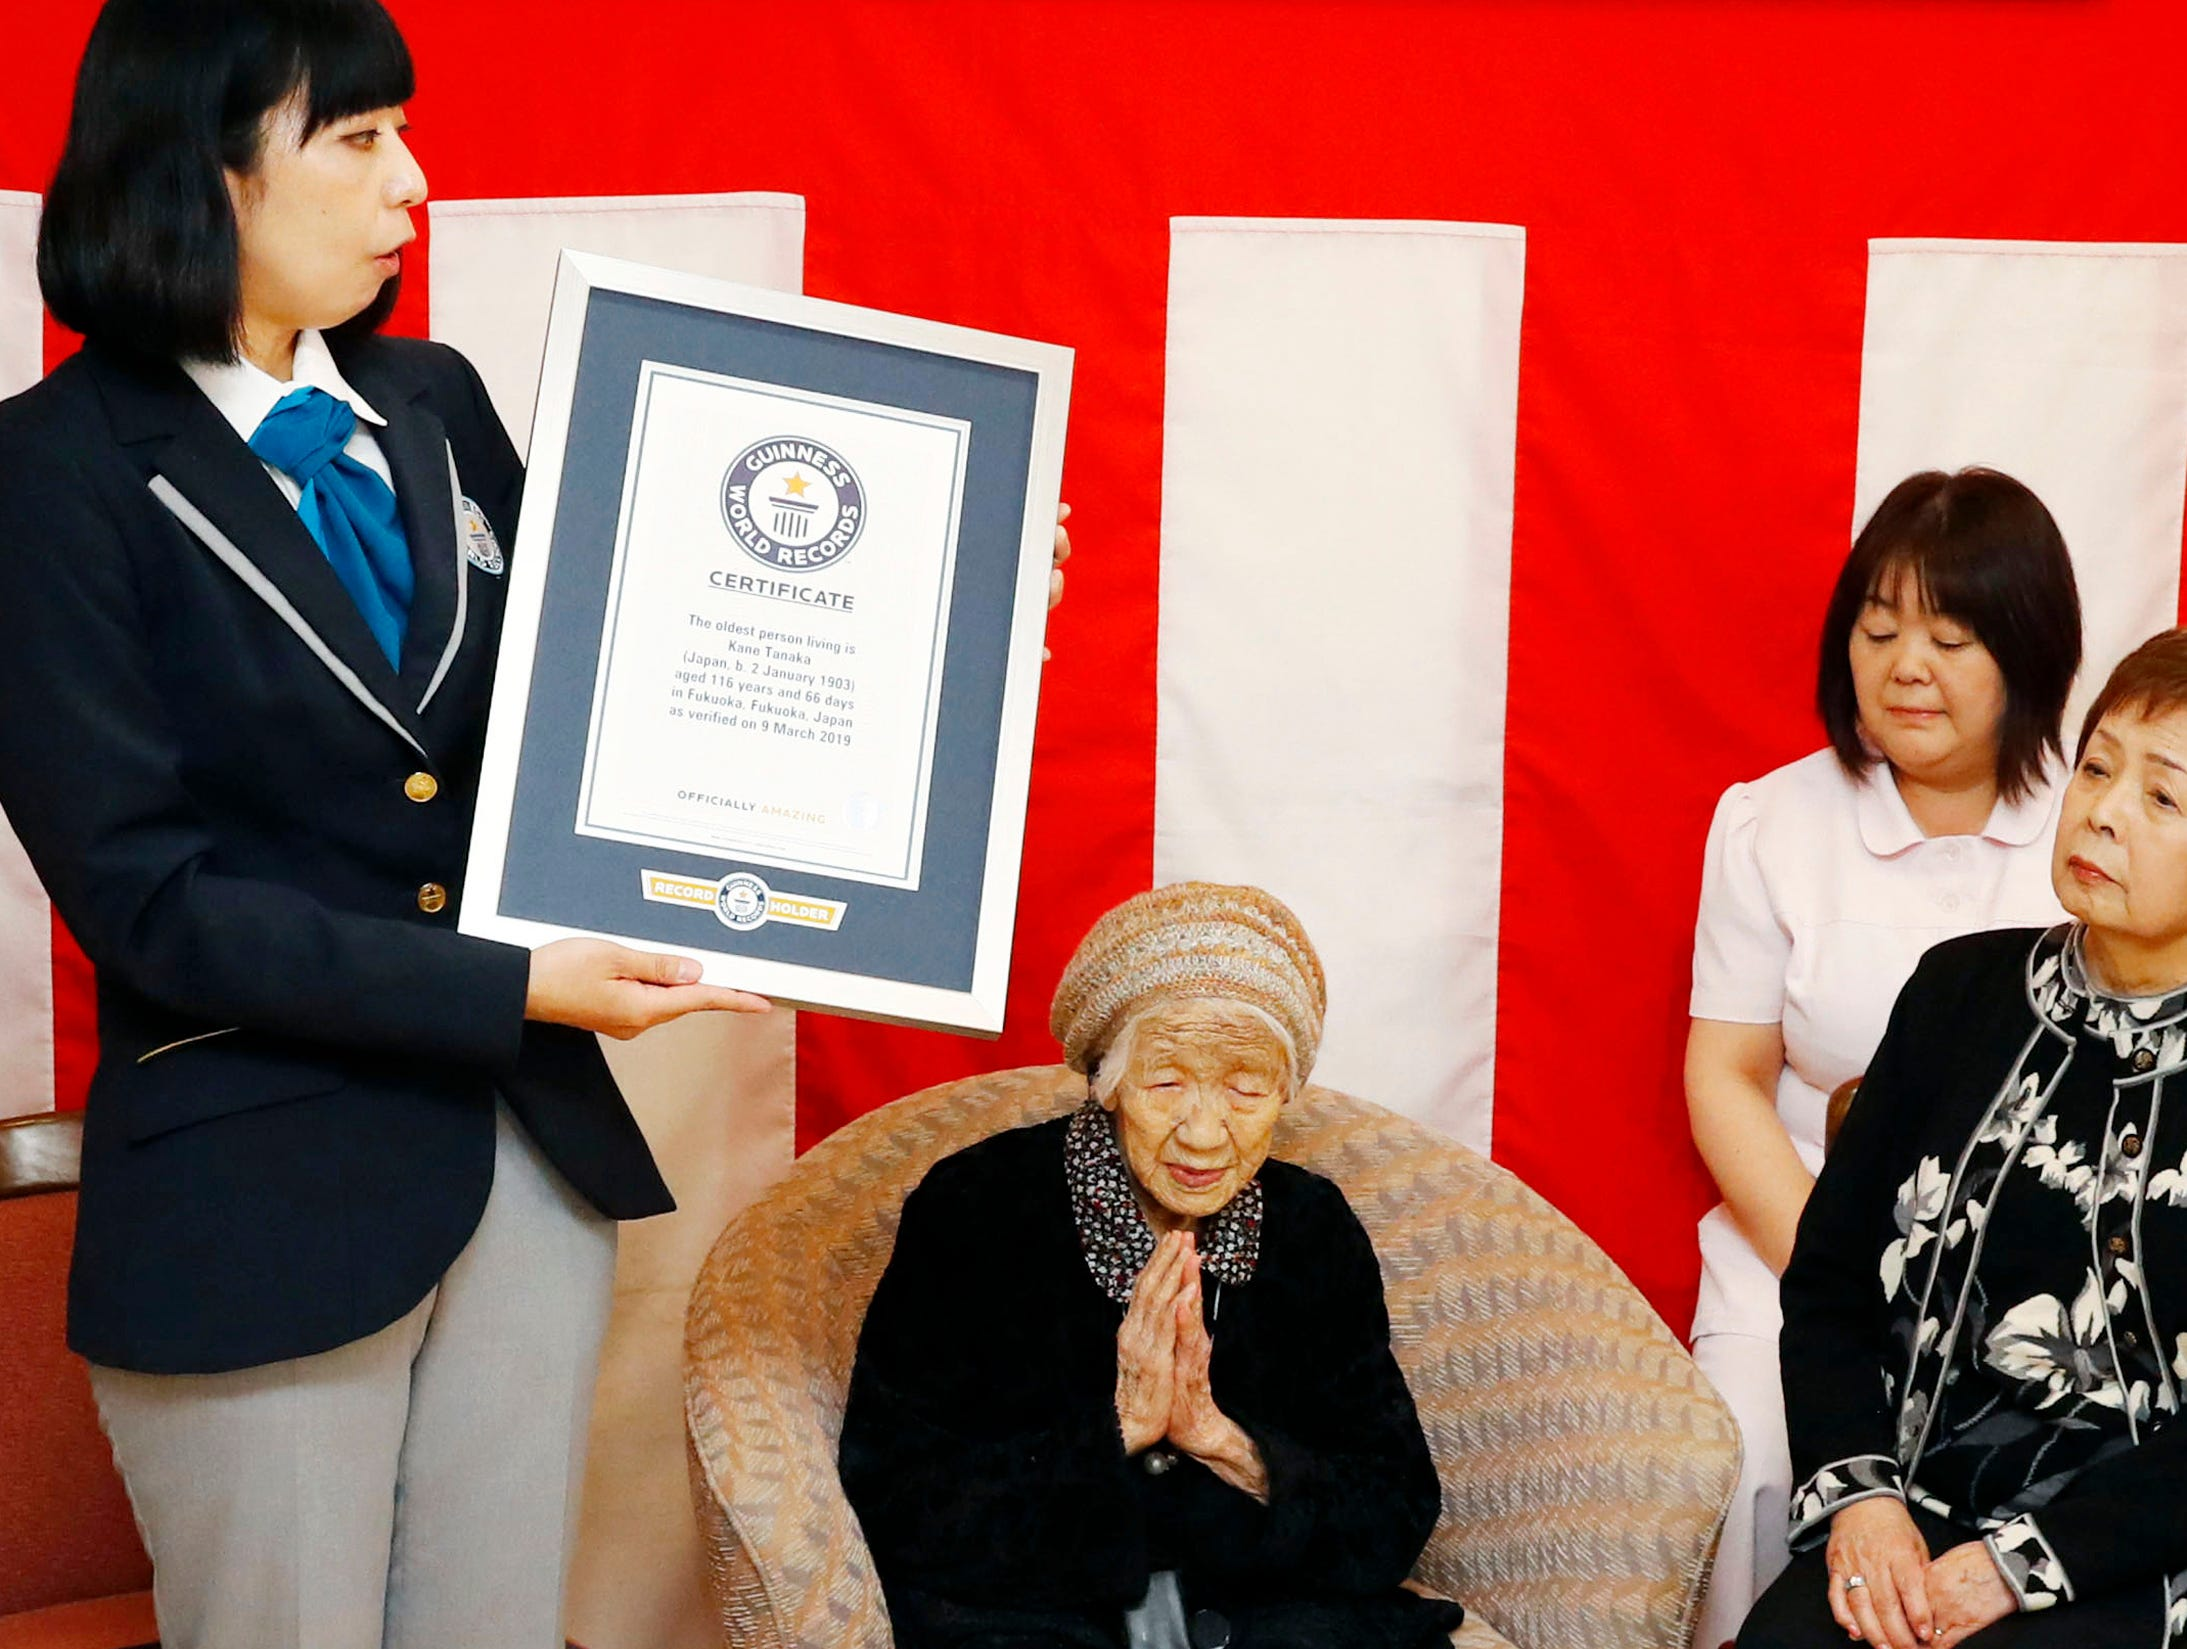 Kane Tanaka, a 116-year-old Japanese woman, puts her hands together as she receives a Guinness World Records certificate at a nursing home where she lives during a ceremony in Fukuoka, Japan on Saturday, March 9, 2019. Tanaka who loves playing the board game Othello was honored Saturday as the world's oldest living person by Guinness World Records.